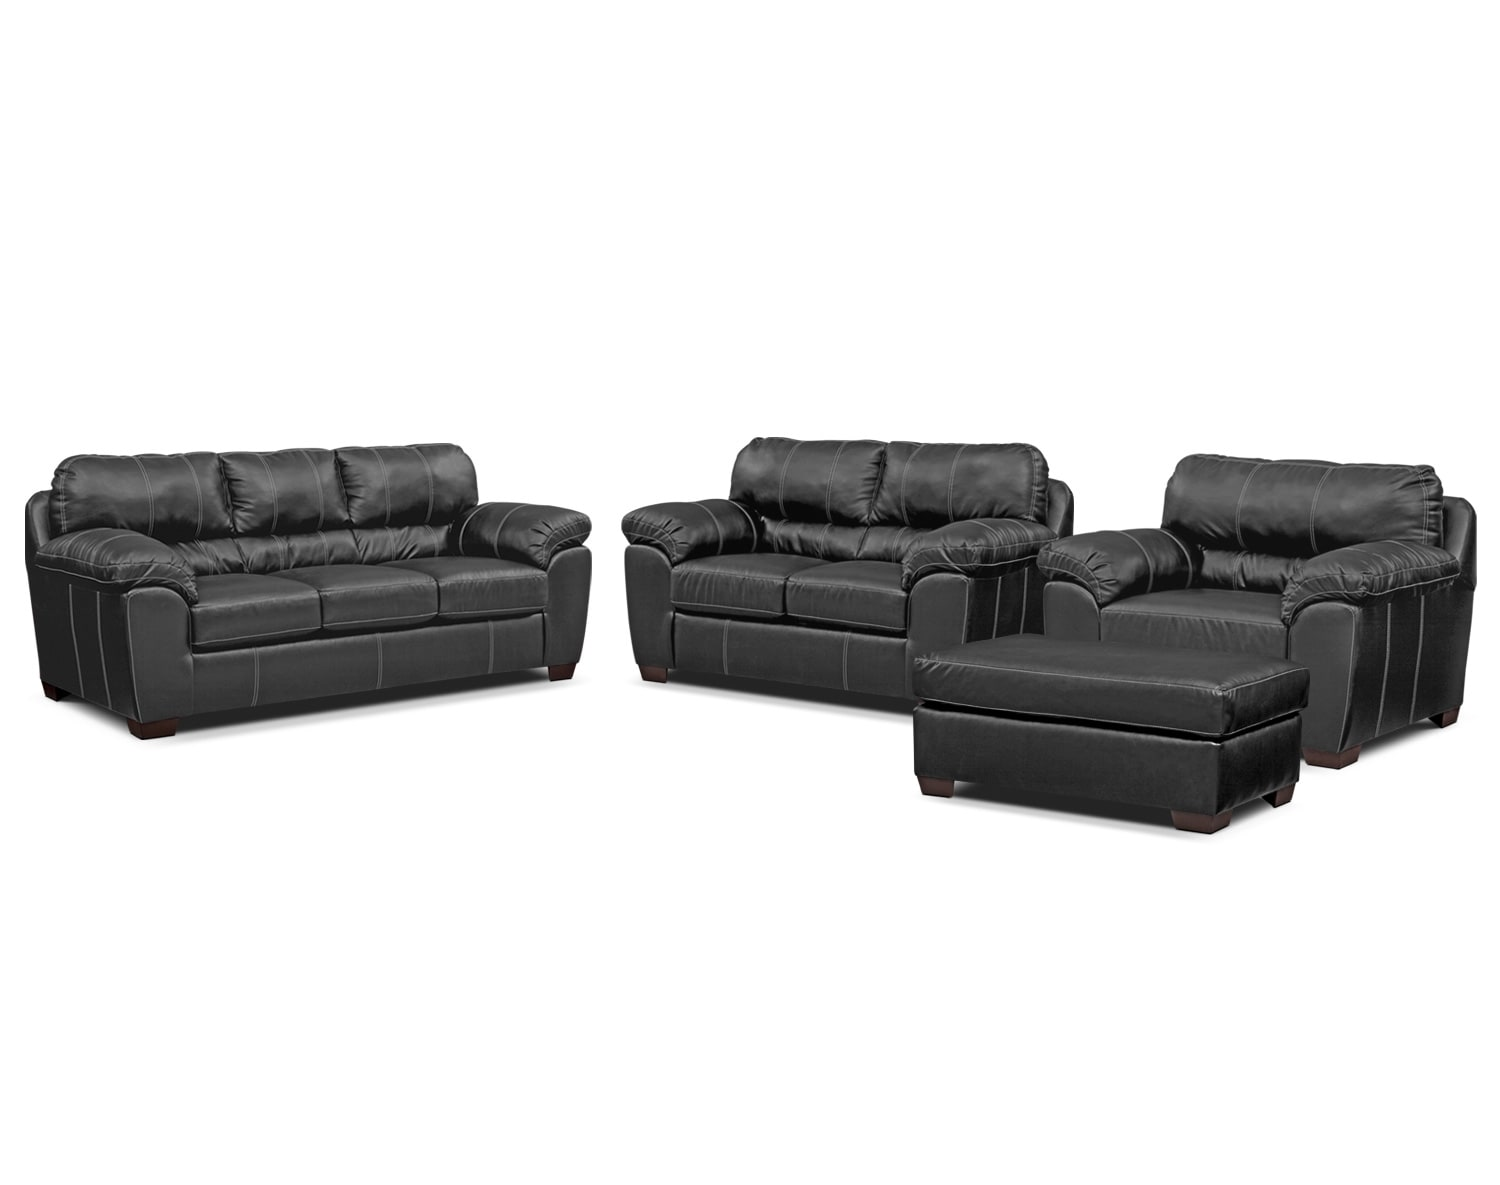 Living Room Furniture - The Henson Black Collection - Sofa